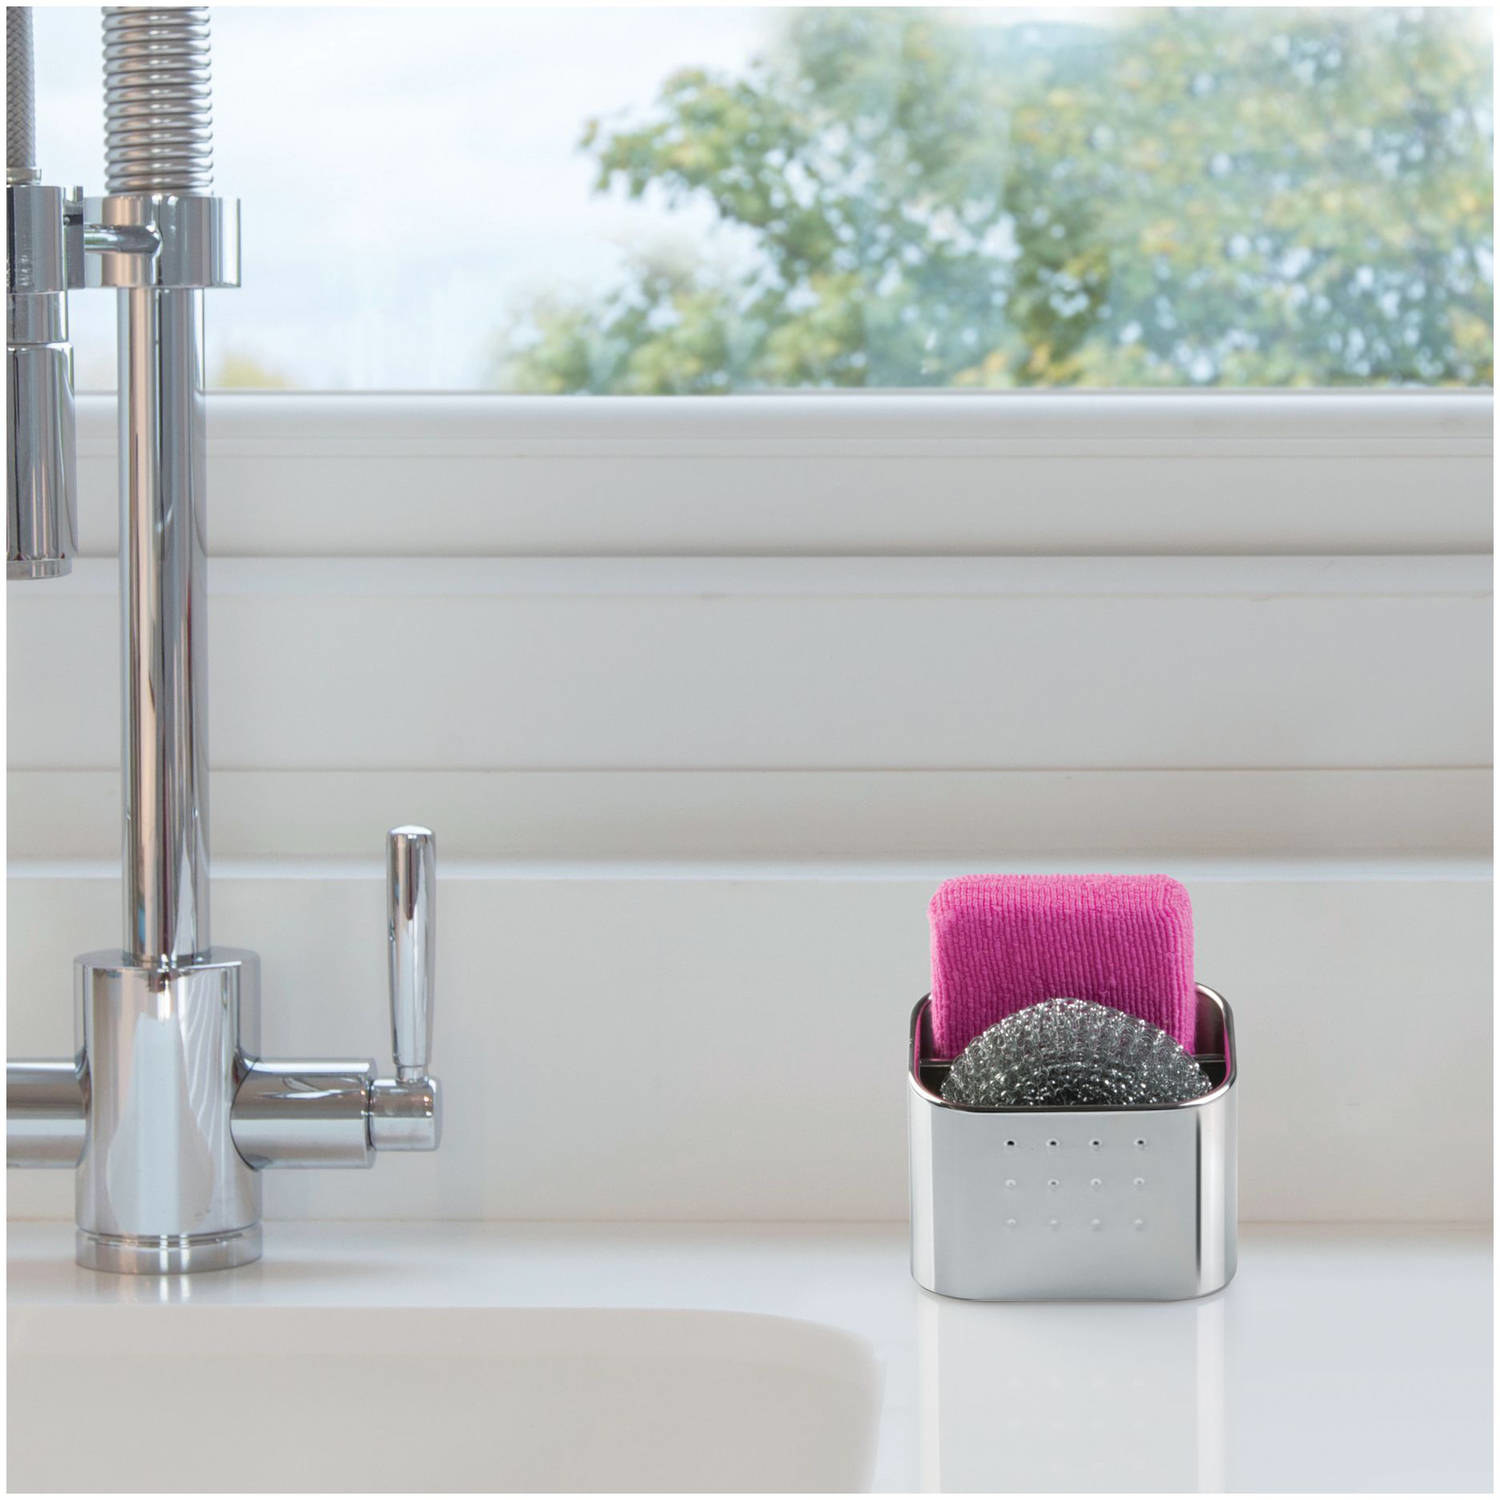 stainless steel sink organizer on a counter next to sink, with two sponges inside